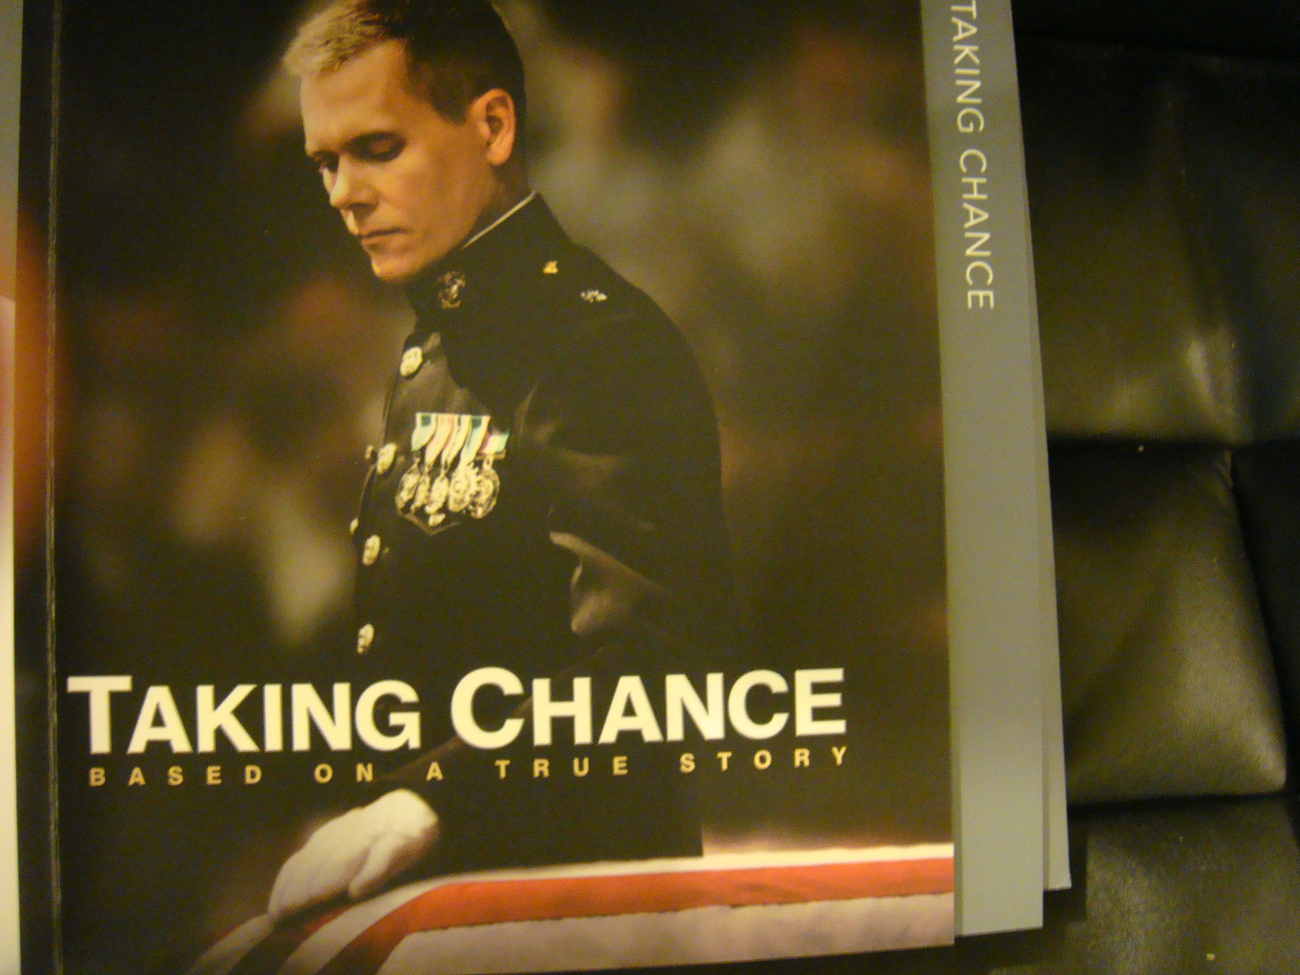 TAKING CHANCE 09 EMMY DVD HBO KEVIN BACON IRAQ MARINE